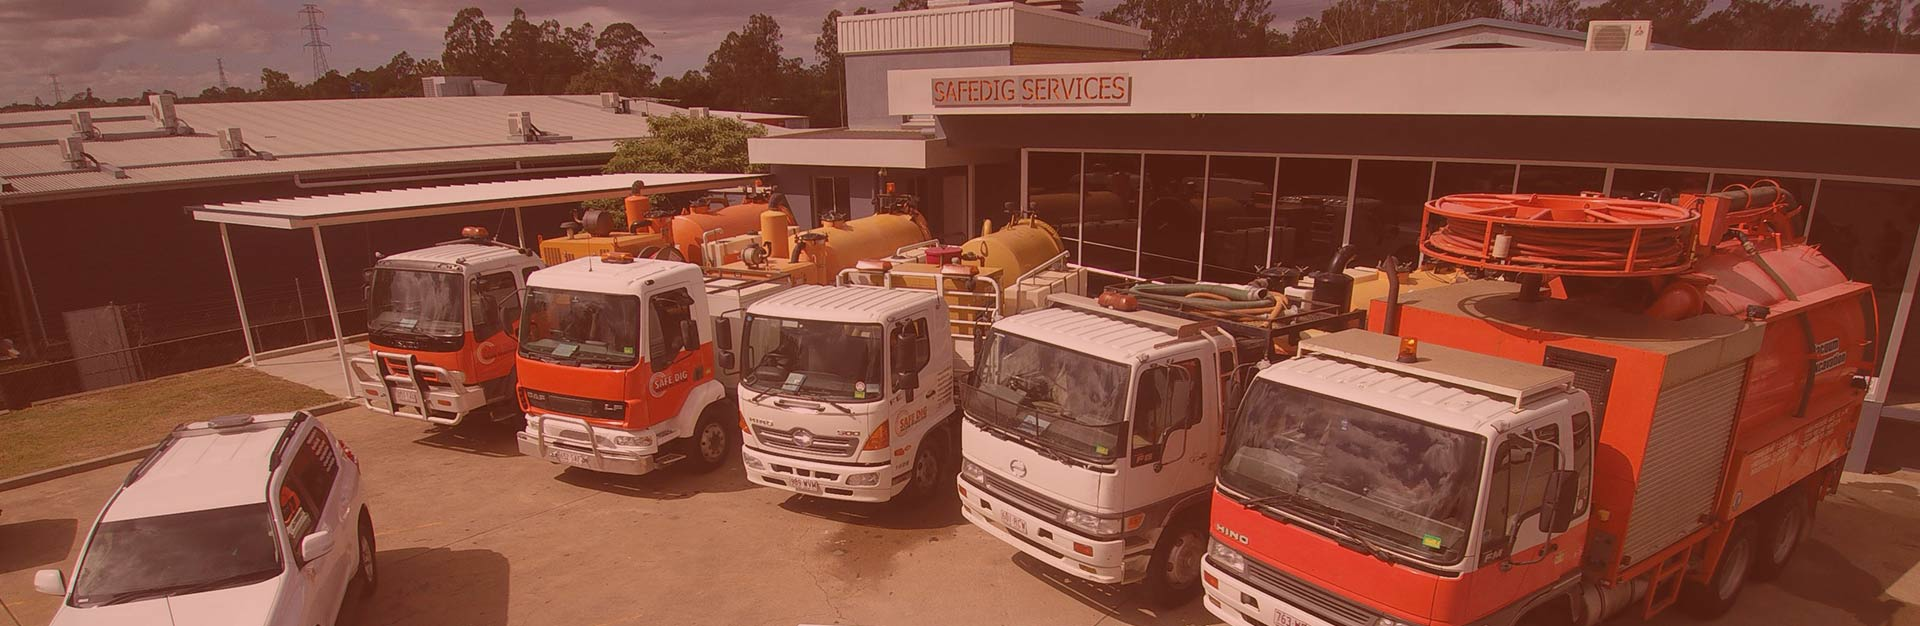 Vacuum Excavation Trucks